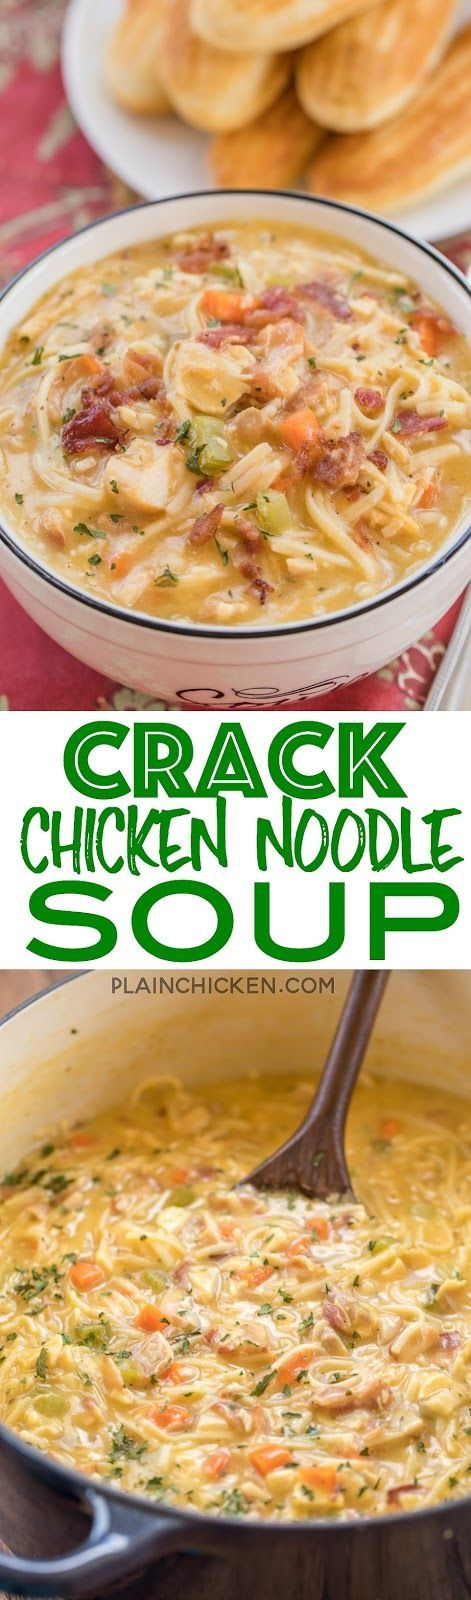 Crack chicken noodle soup:  omitted cheddar cheese and substituted 1-15oz jar smooth and cheesy dip Tostitos. Best ever! Delicious!